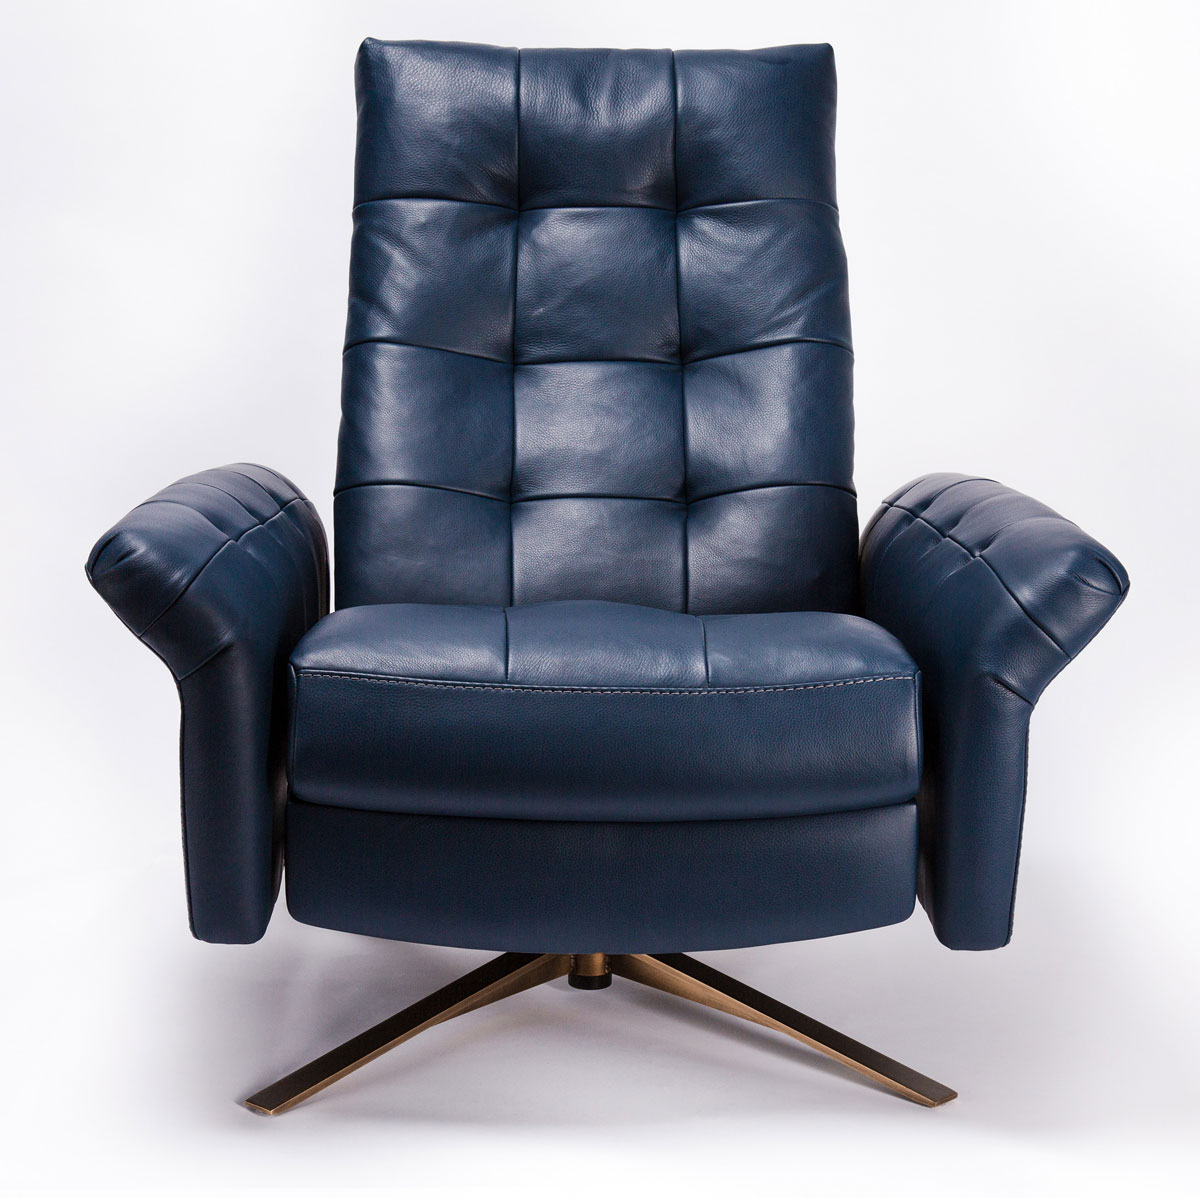 Pileus Comfort Air by American Leather